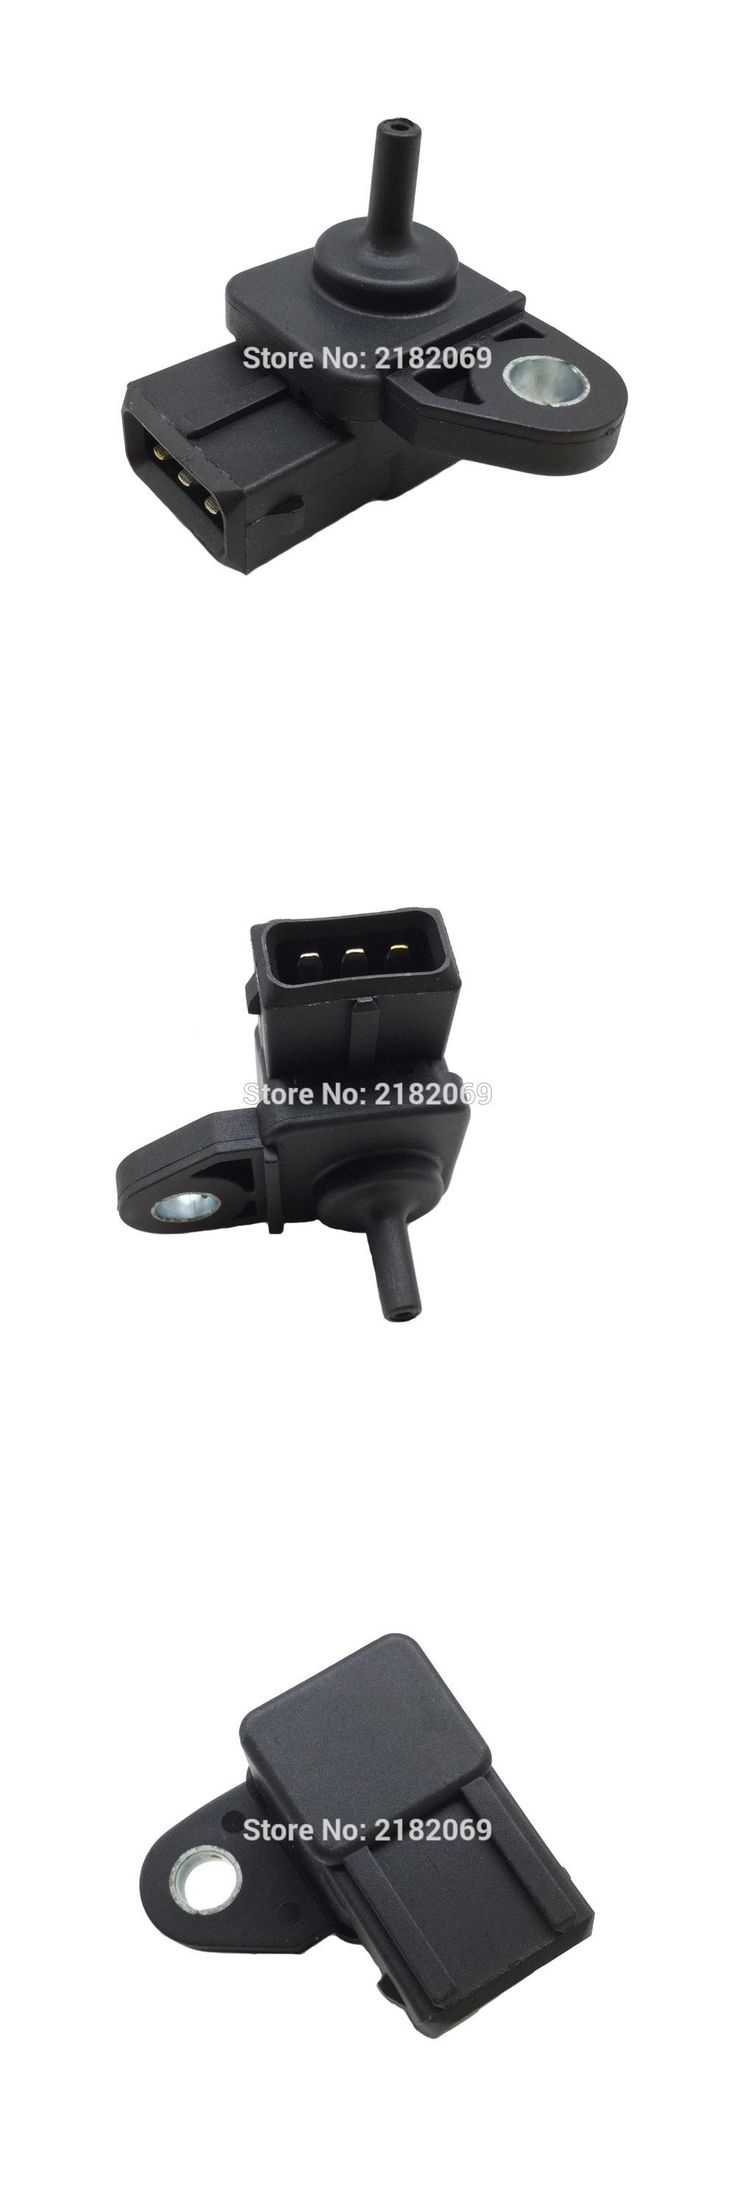 [Visit to Buy] MAP Manifold Air Pressure Sensor For Mitsubishi L200 Pajero ME202119 MD343375 E1T16475 AS330 5S2490 1904307804 721611  #Advertisement